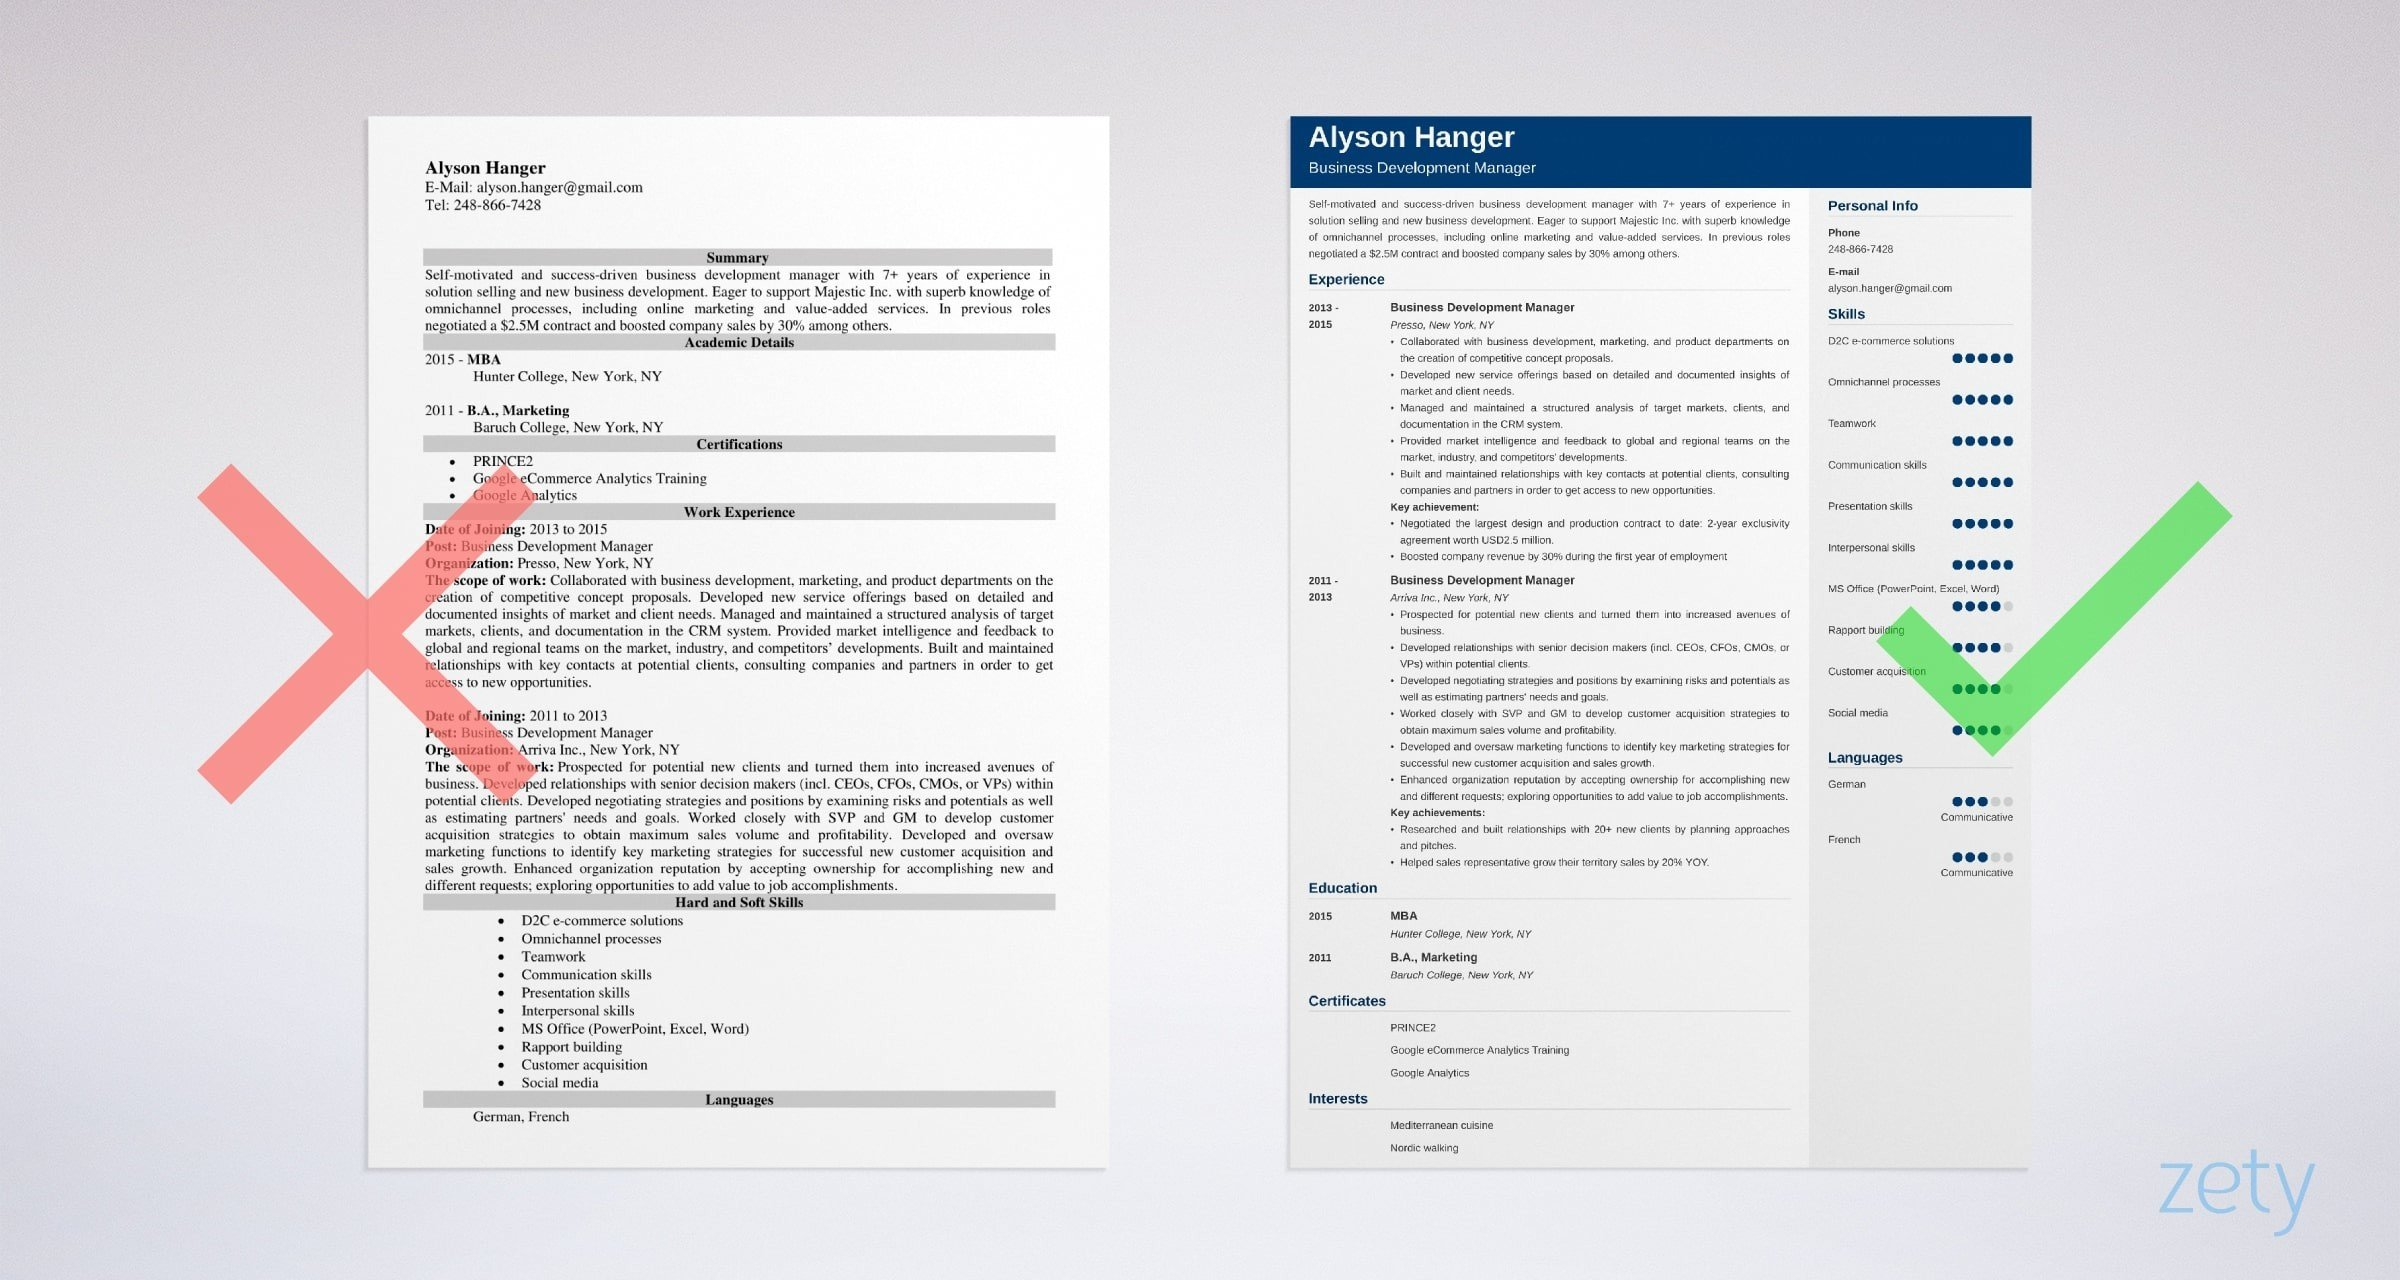 business development manager resume sample tips best format for example structure Resume Best Resume Format For Business Development Manager